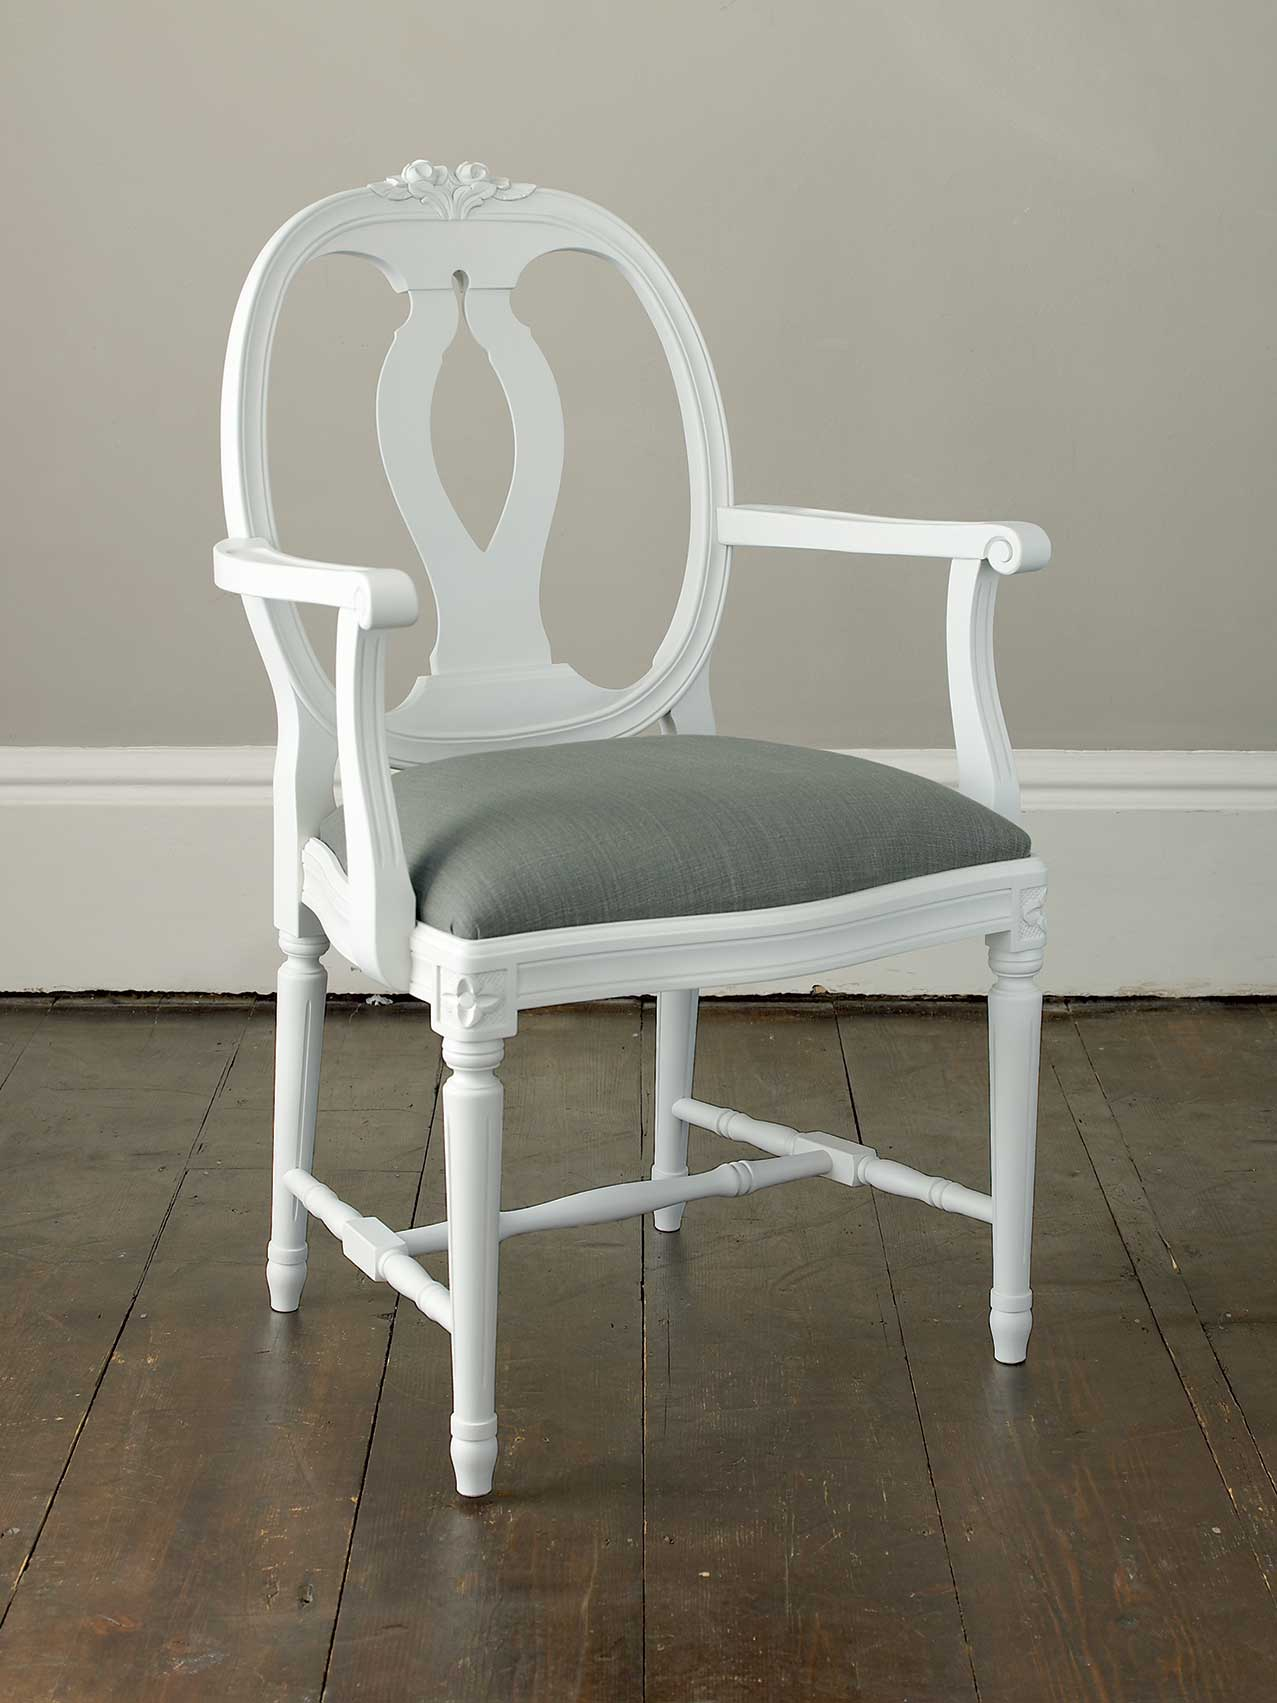 Rosen chair with Arms (457)